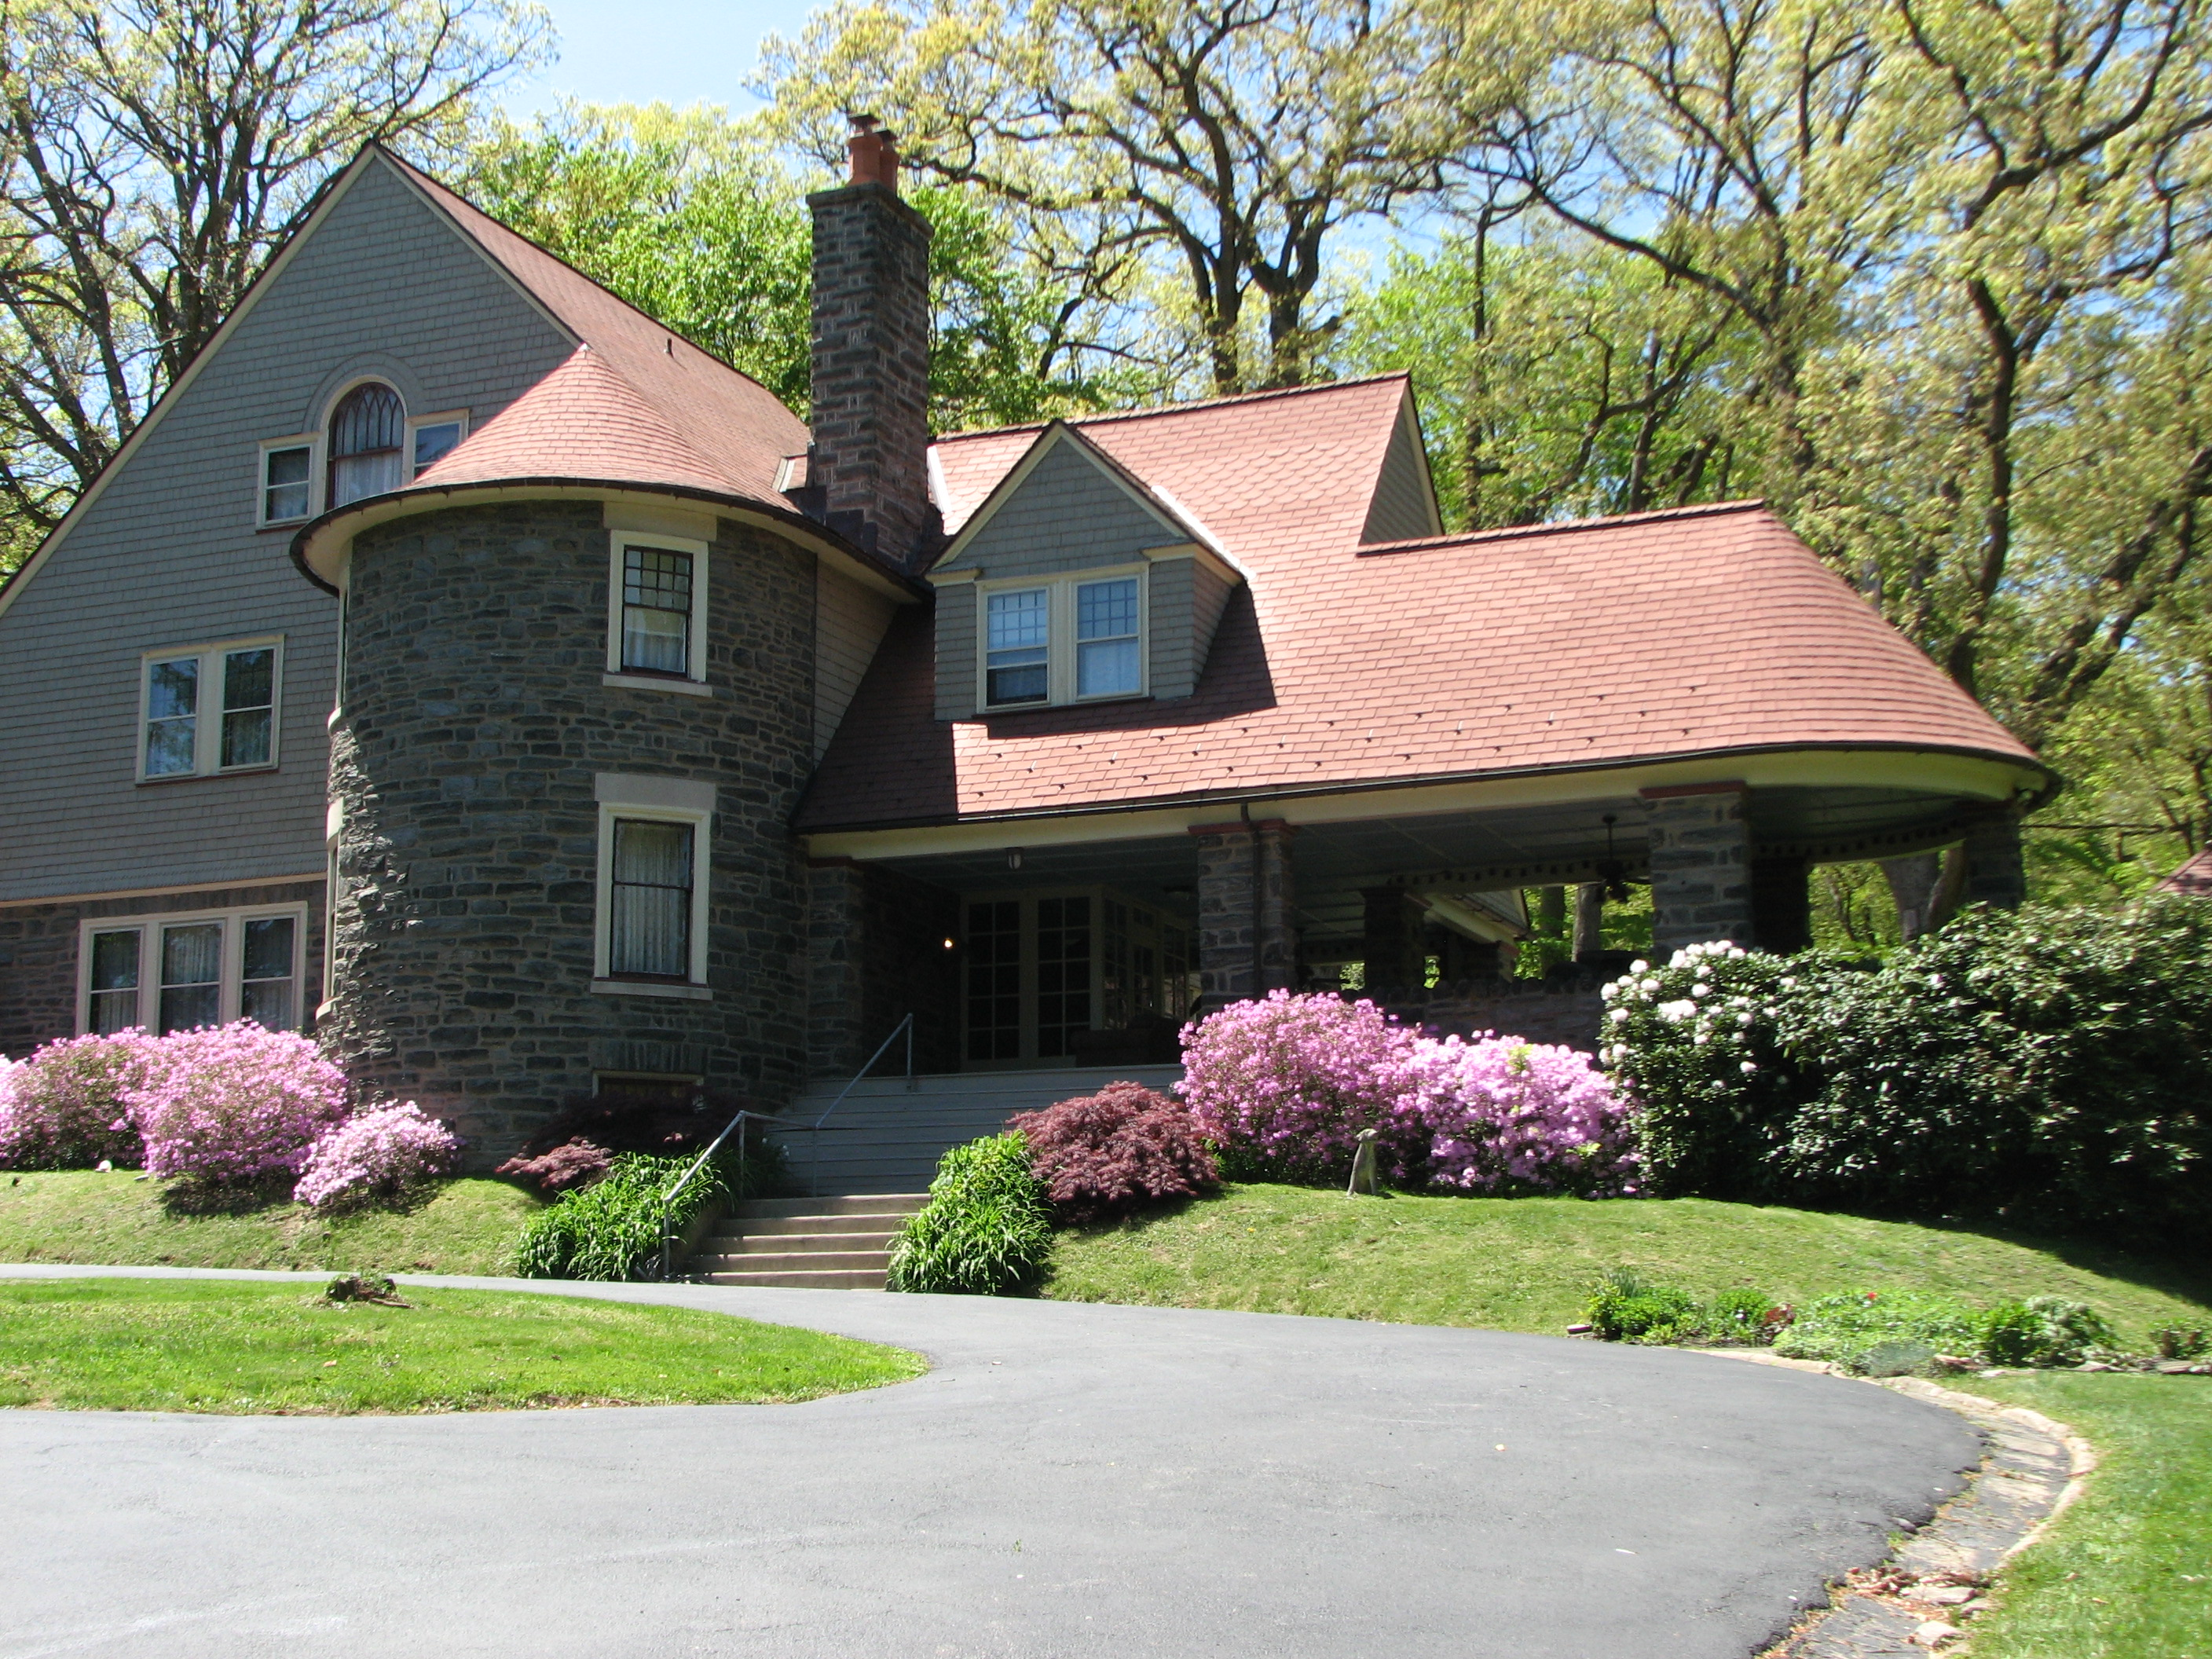 Horace Trumbauer designed the Shingle Style homes in the 1890s.